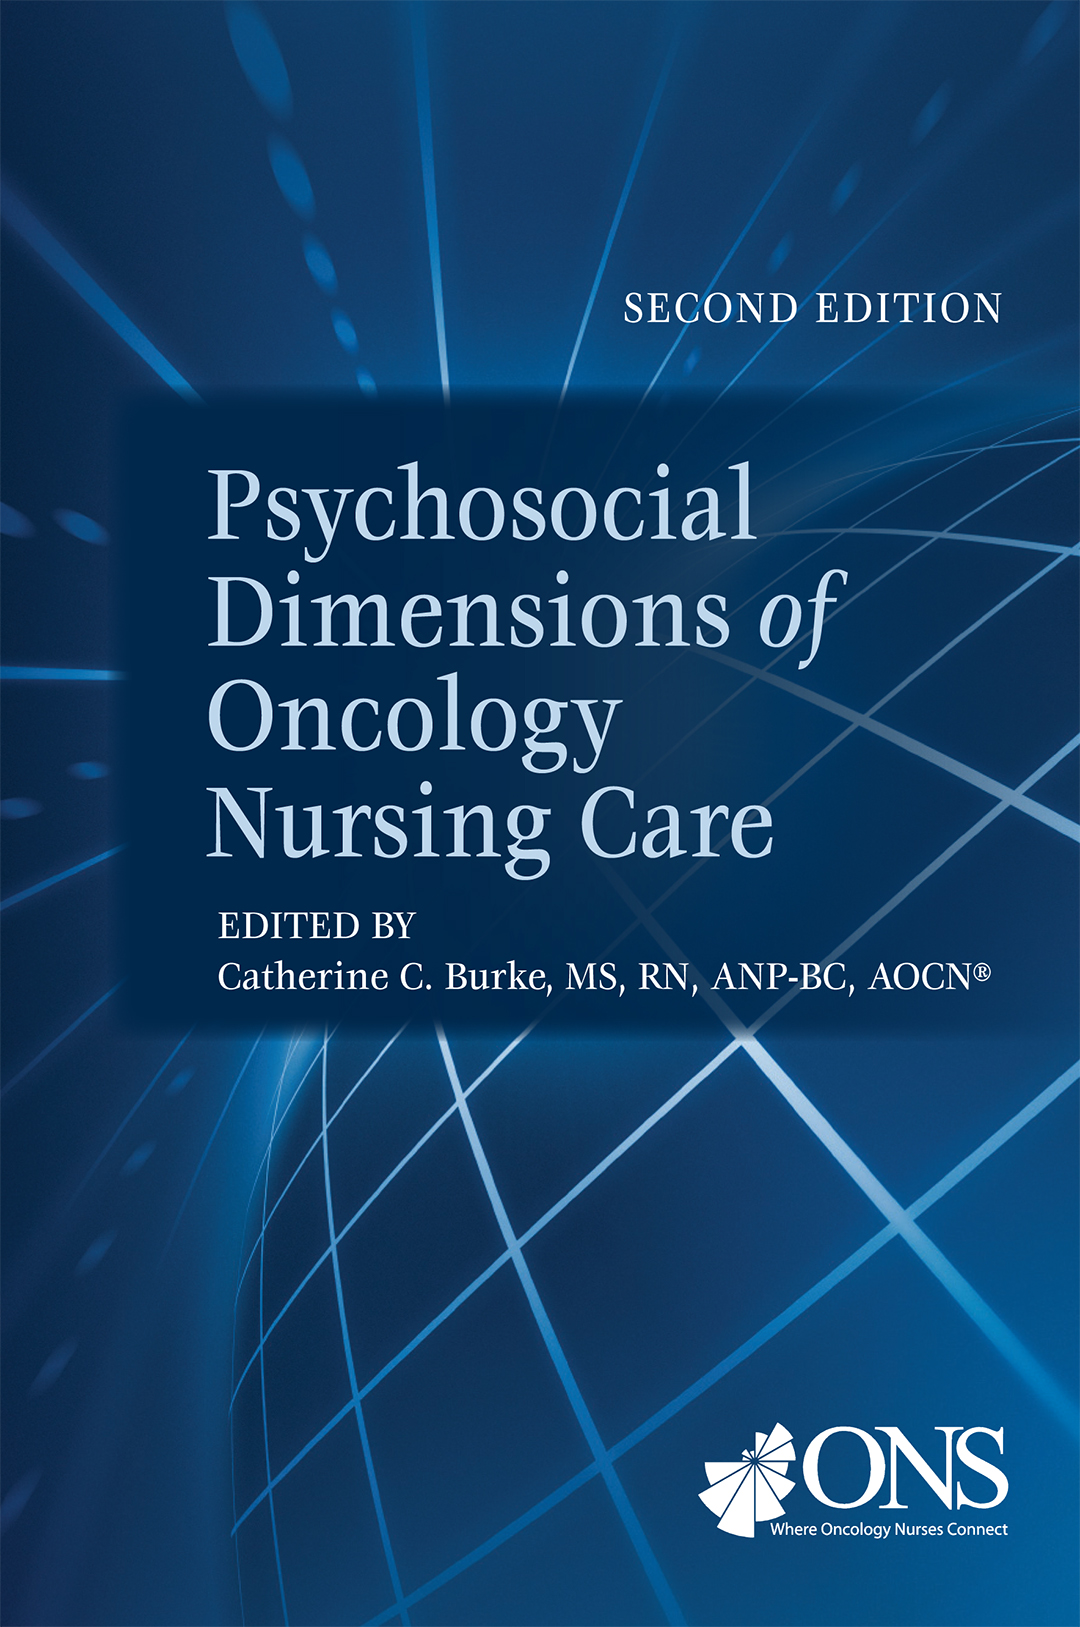 Psychosocial Dimensions of Oncology Nursing Care